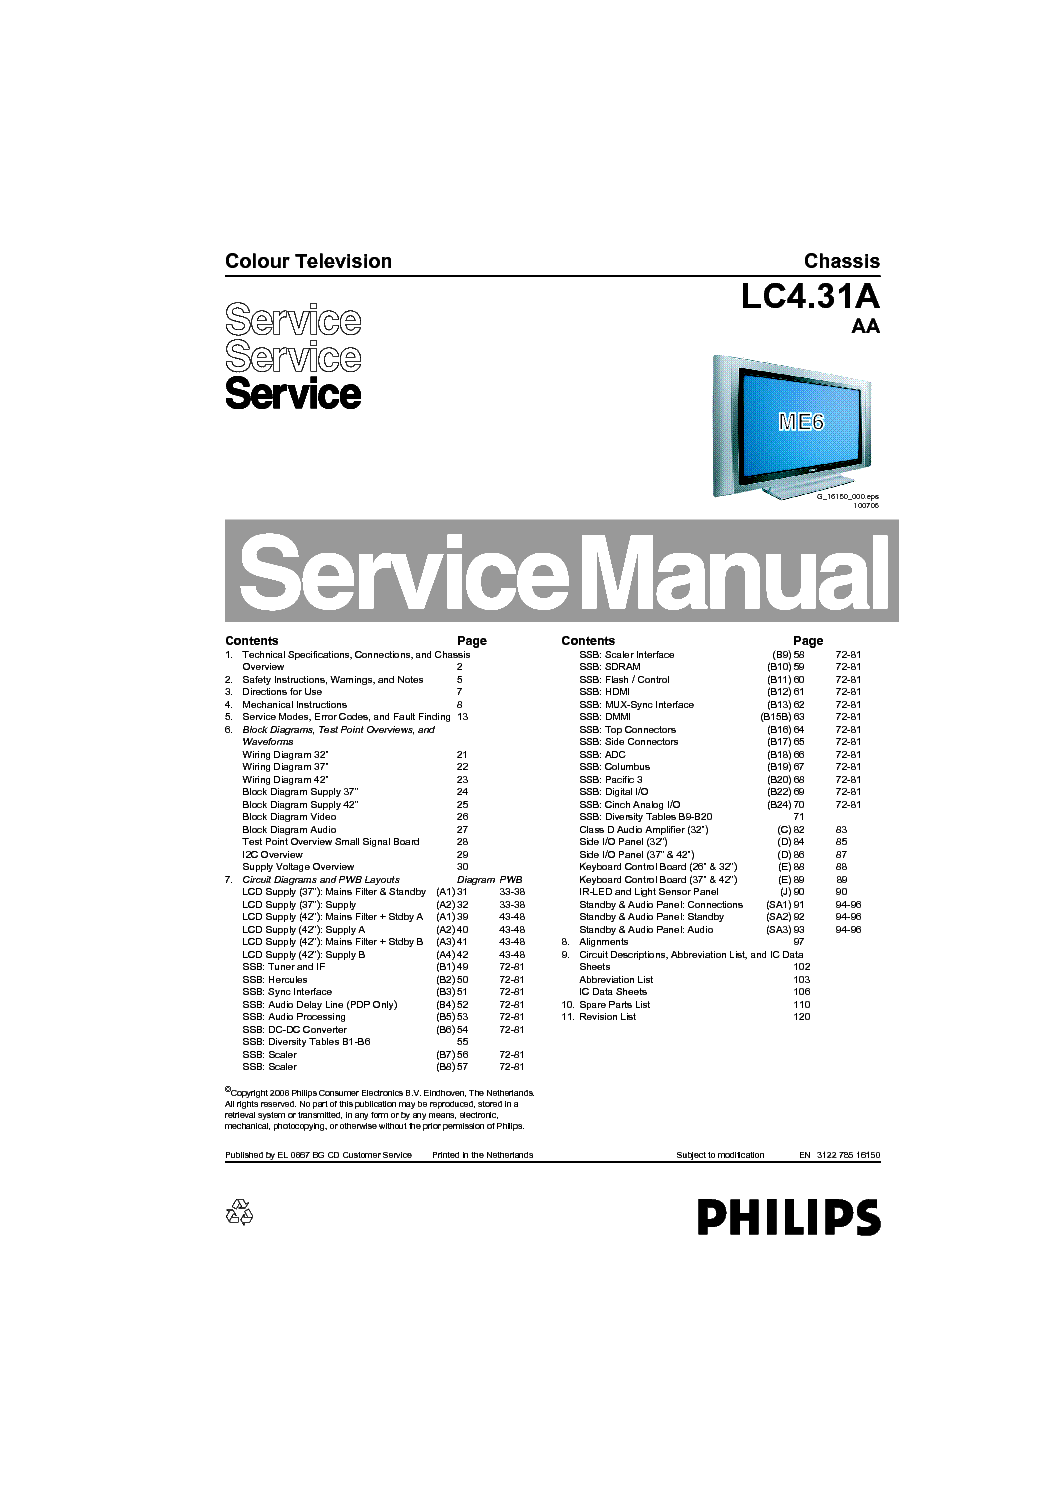 PHILIPS 32PF7321 37PF7321 42PF7421 79 93 98 CHASSIS LC4.31A AA service manual (1st page)